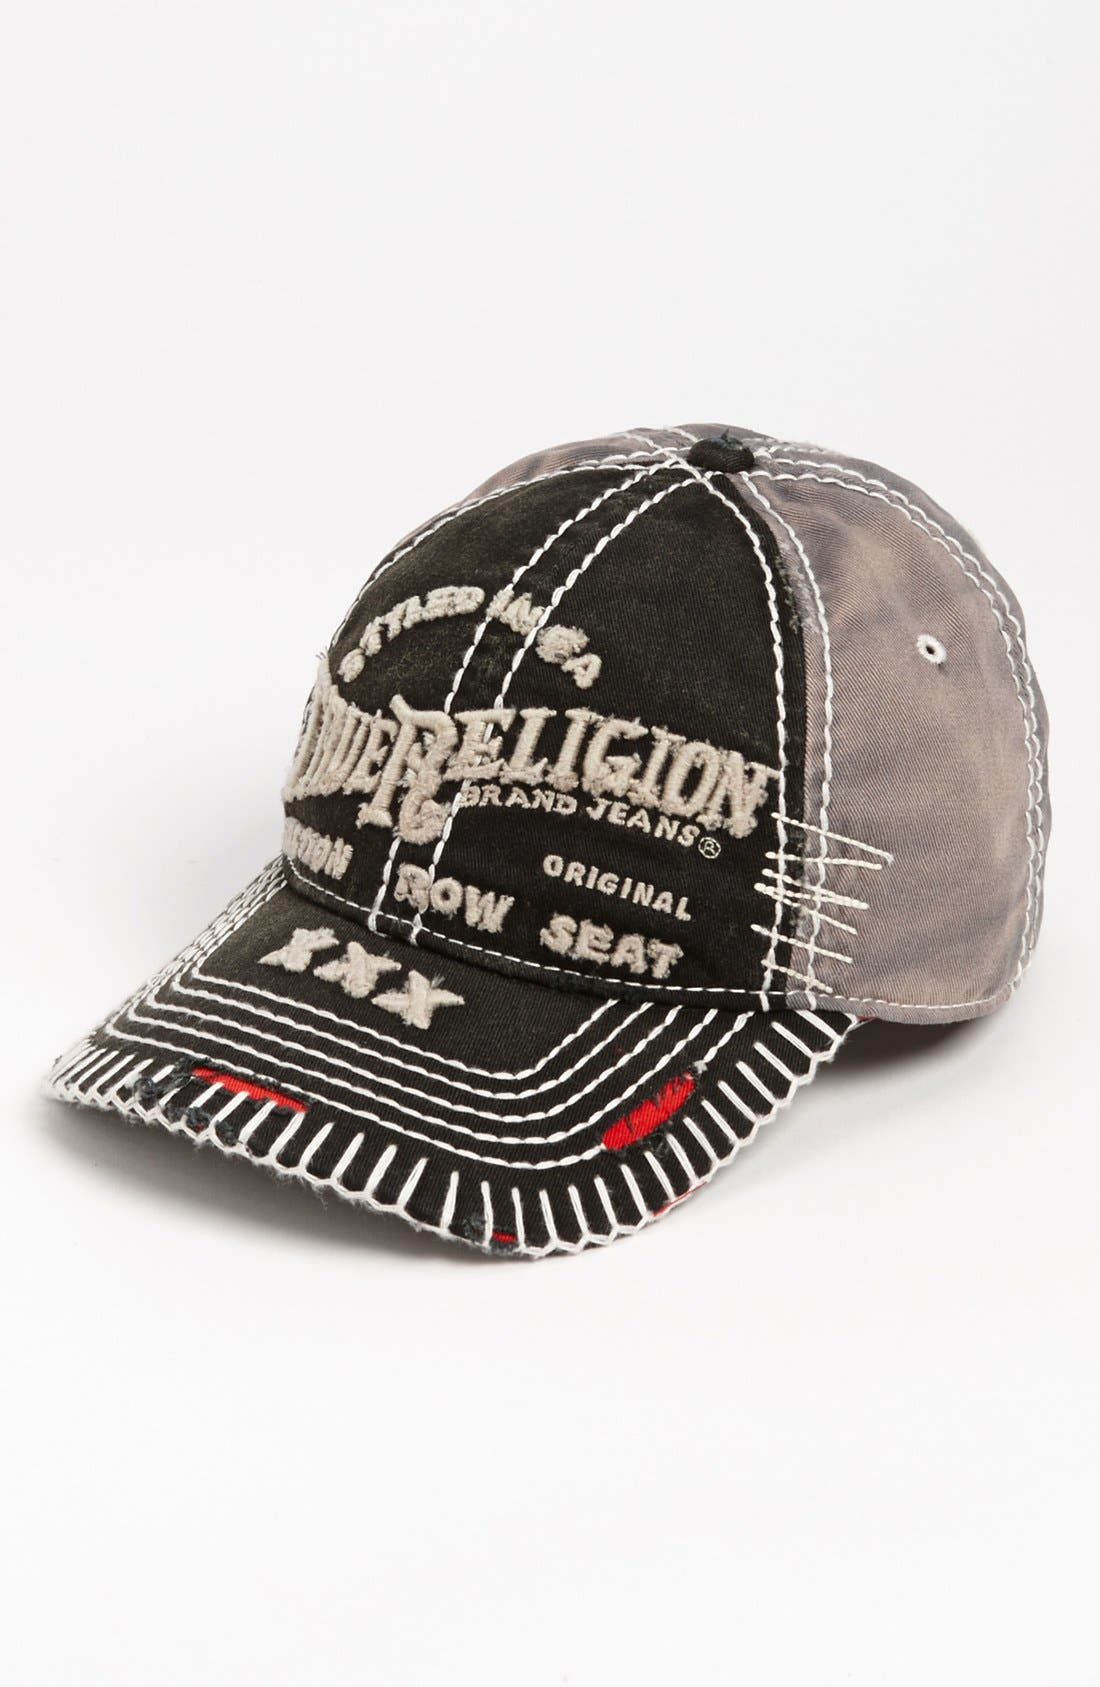 Main Image - True Religion Brand Jeans 'Triple X' Baseball Cap